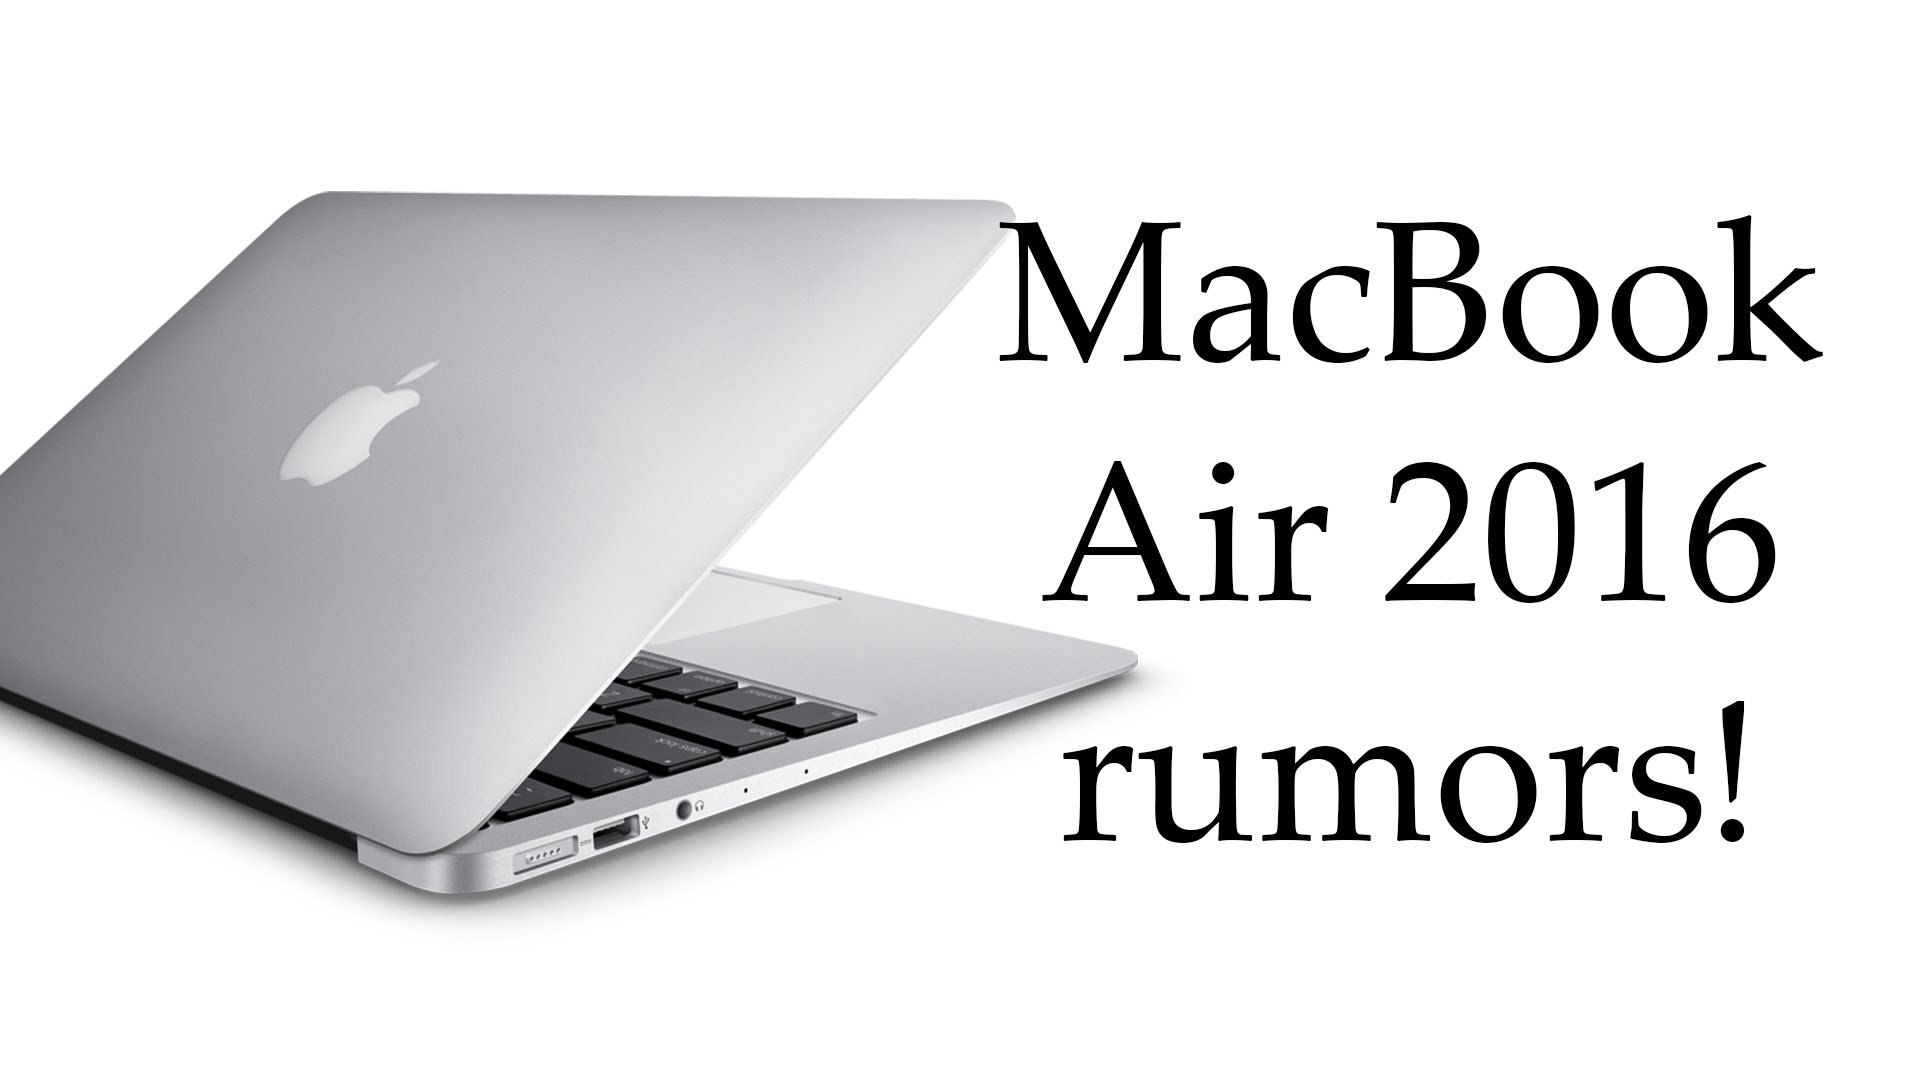 MacBook Air 2016 TechViral